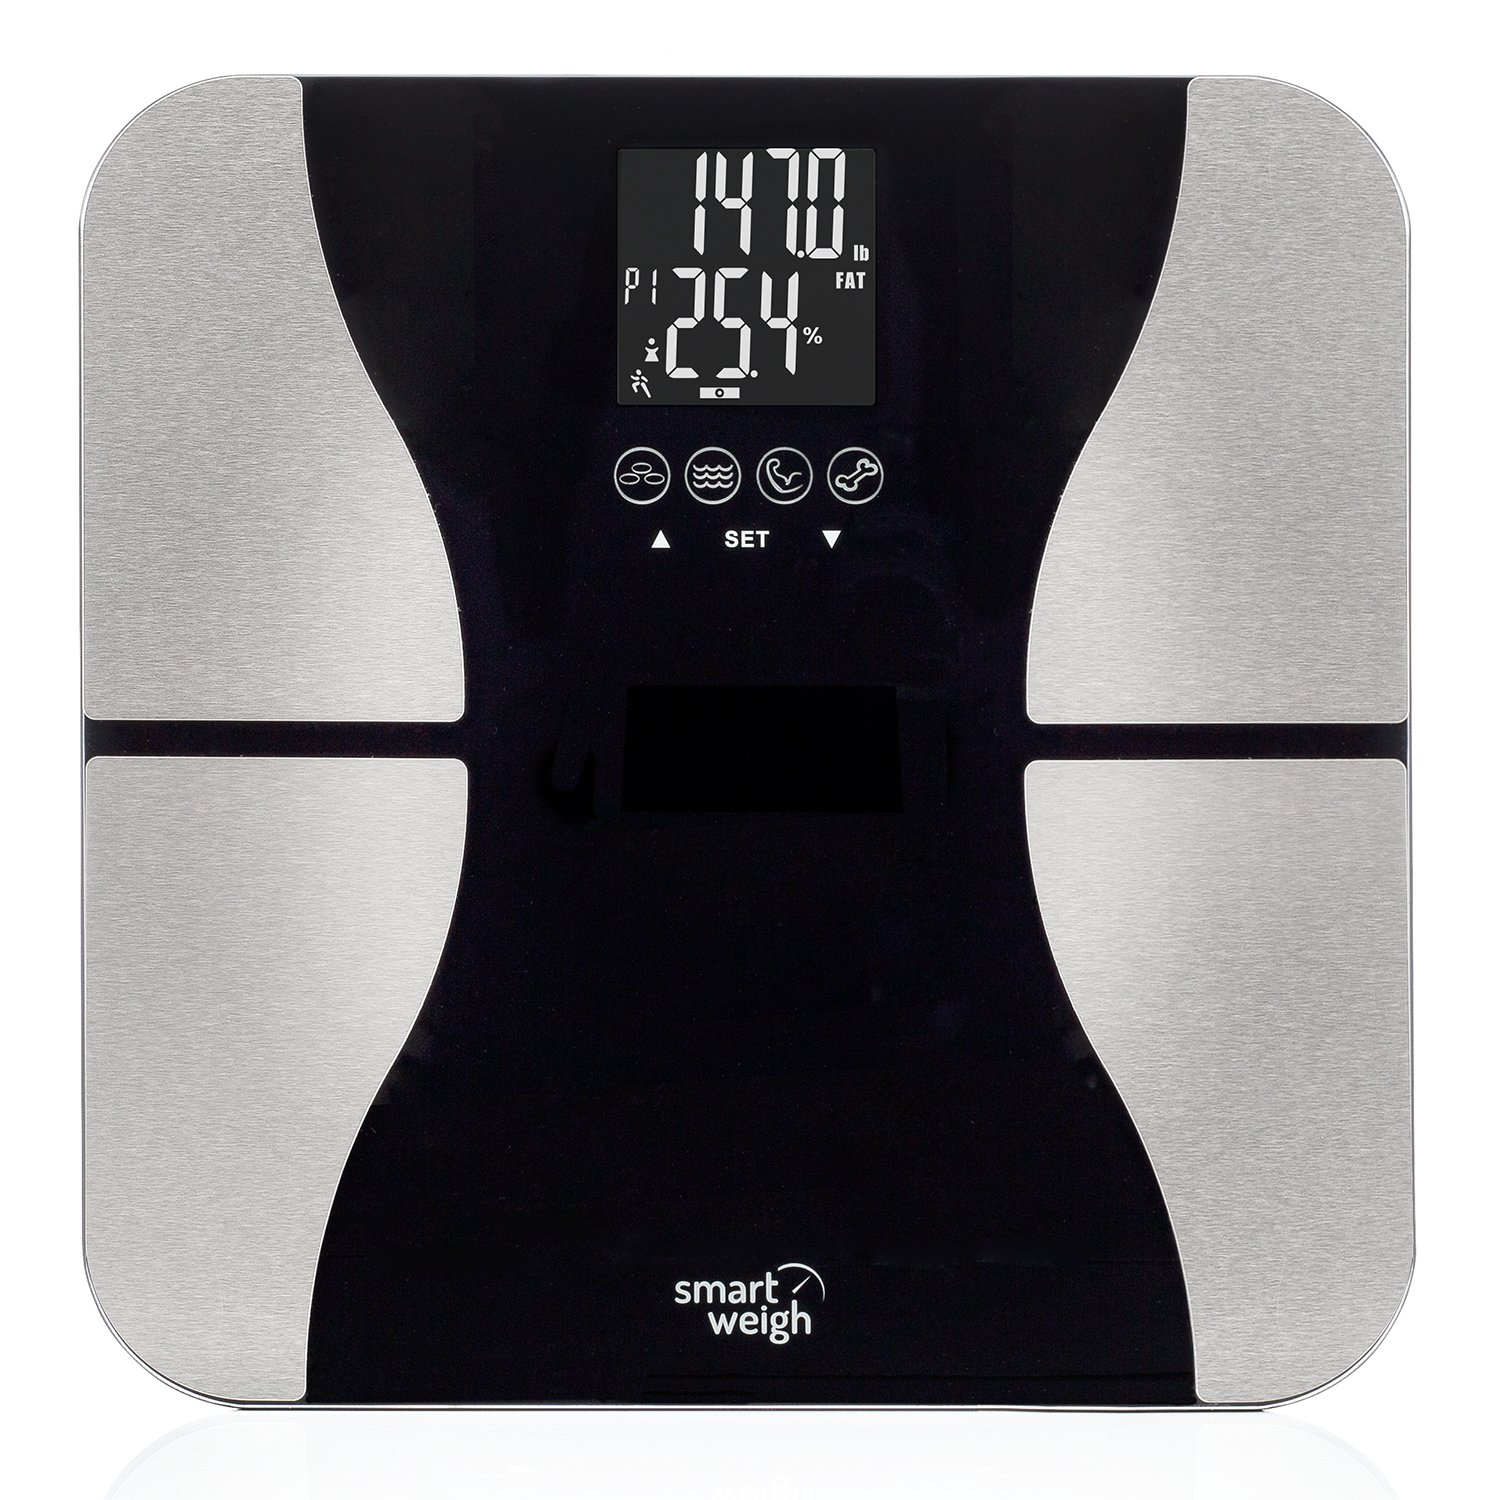 Smart Weigh Precision Body Fat Weight Scale with Tempered Glass Platform, Eight (Adult) User Recognition, 440 lb Weight Capacity, Measures Weight, Body Fat, Water, and Muscle Mass